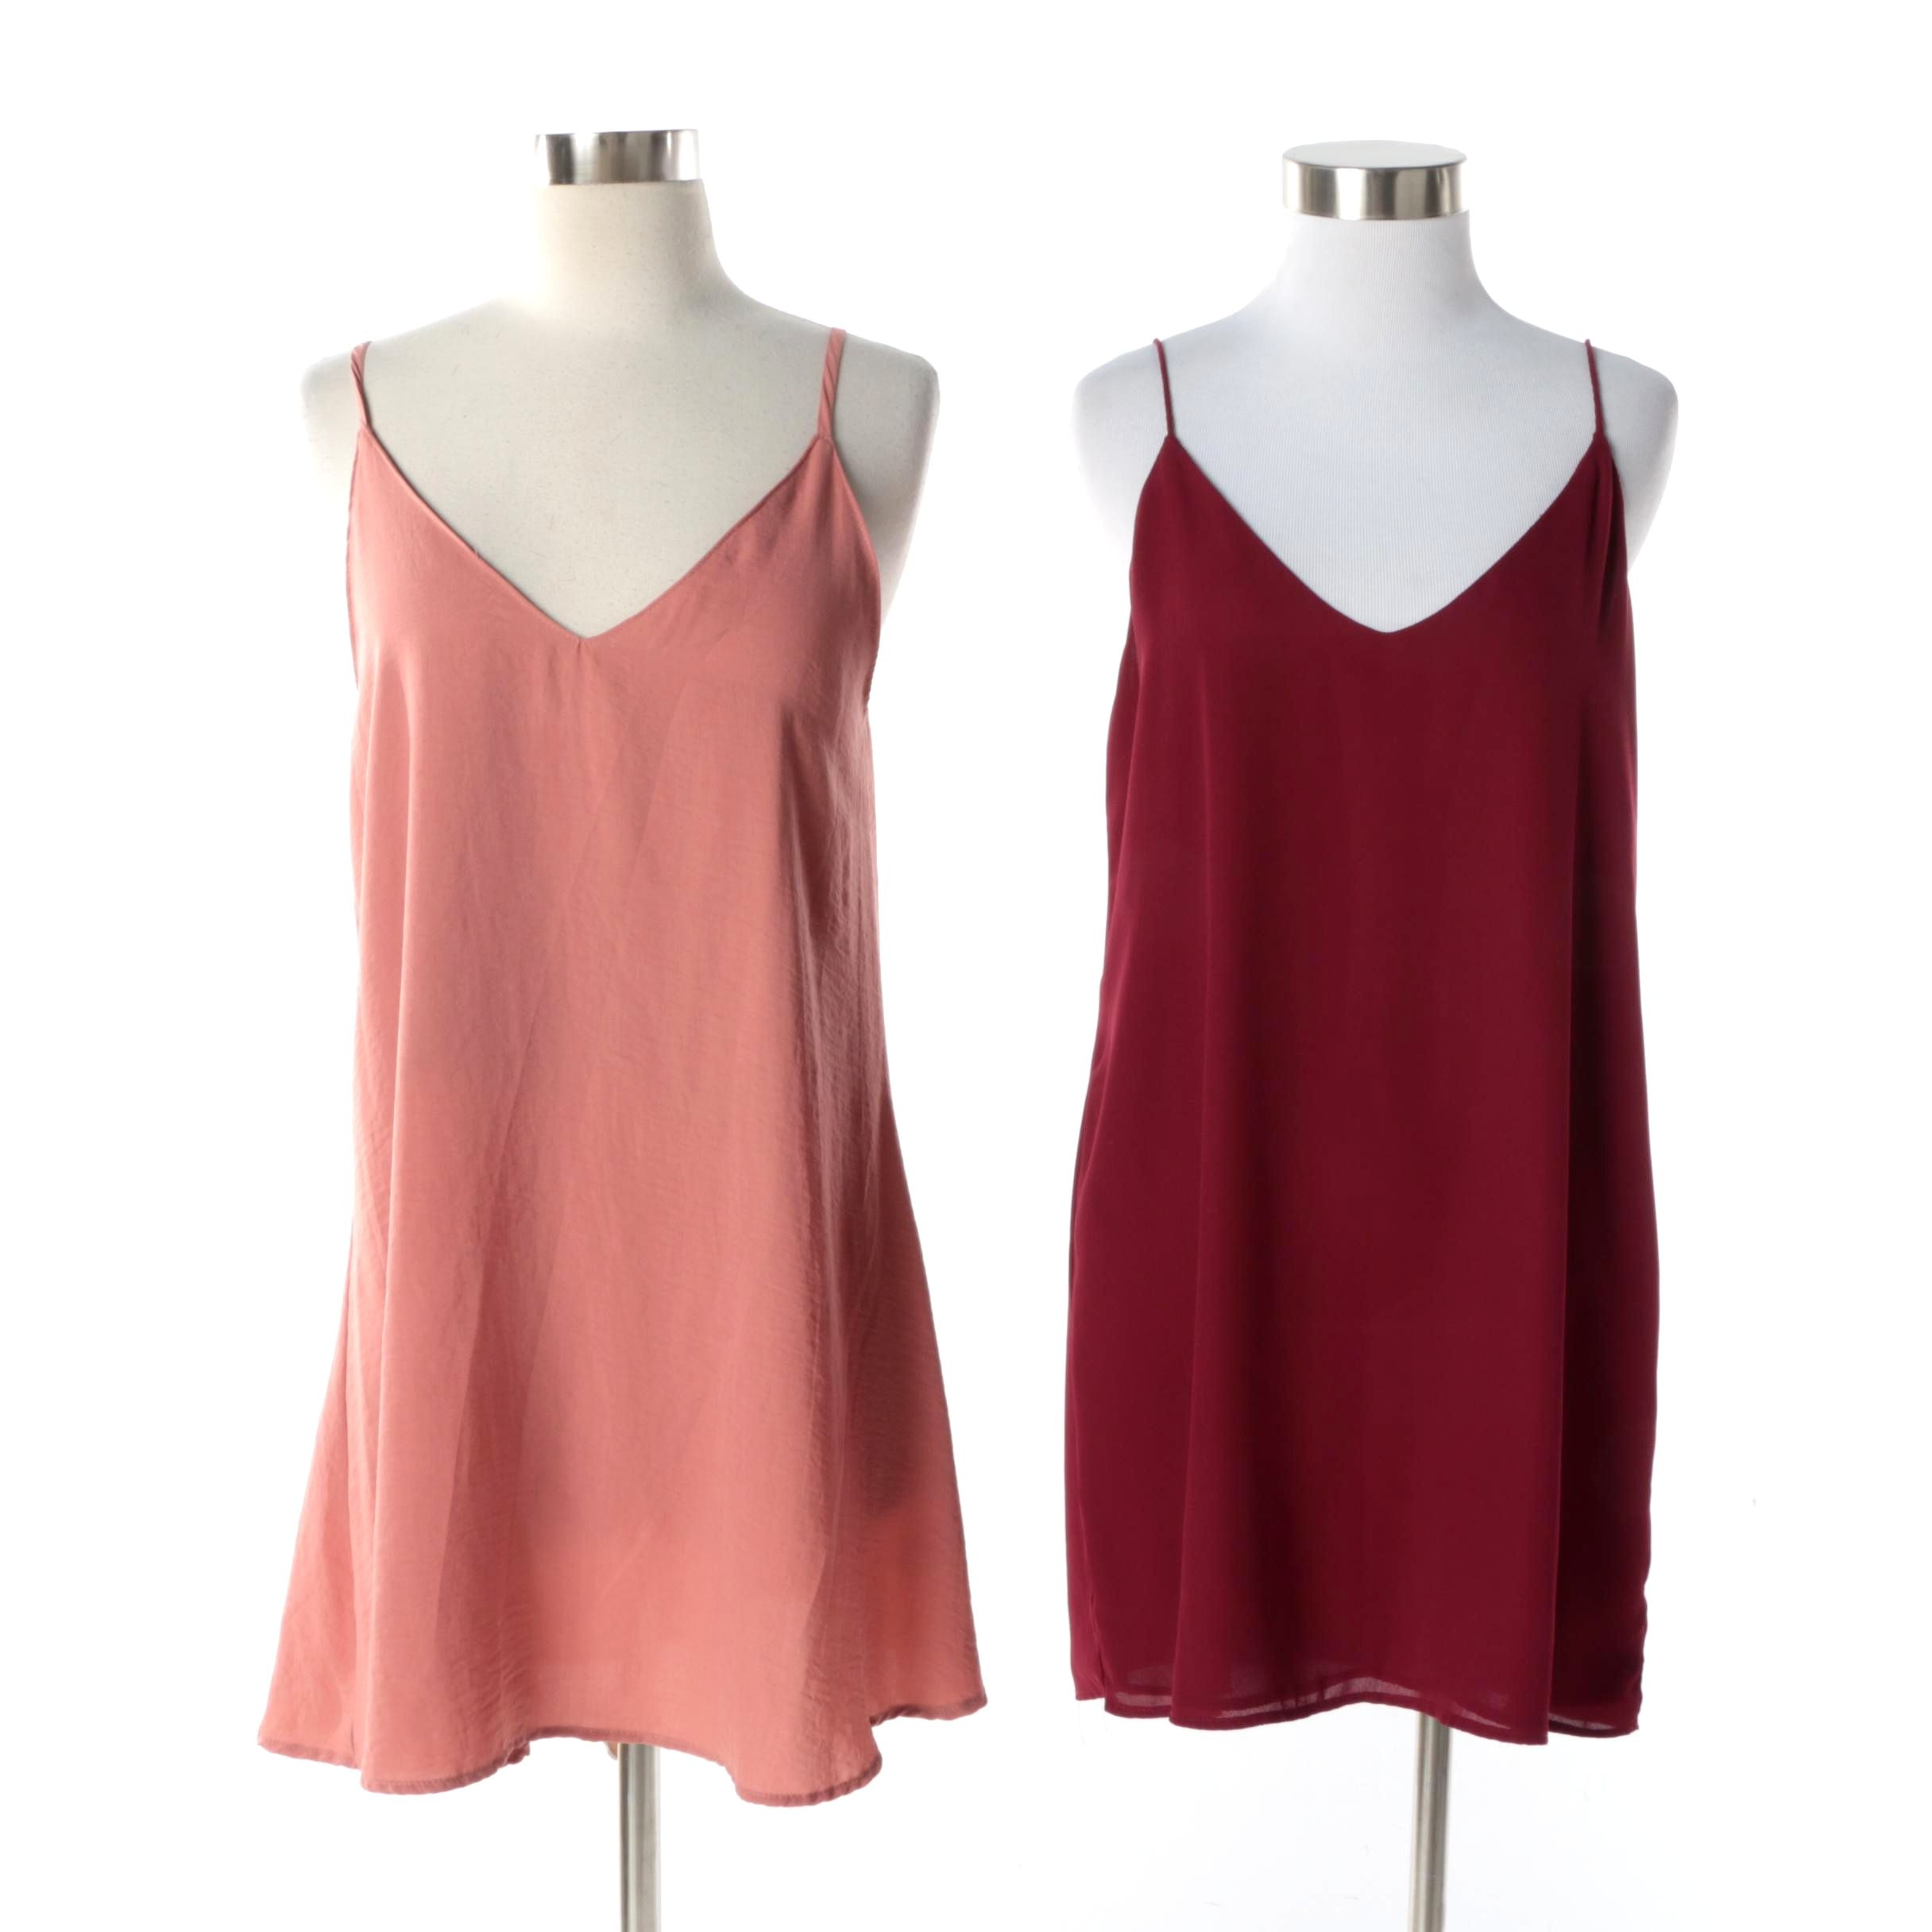 Women's Camisoles Including Forever 21 and Audrey 3+1